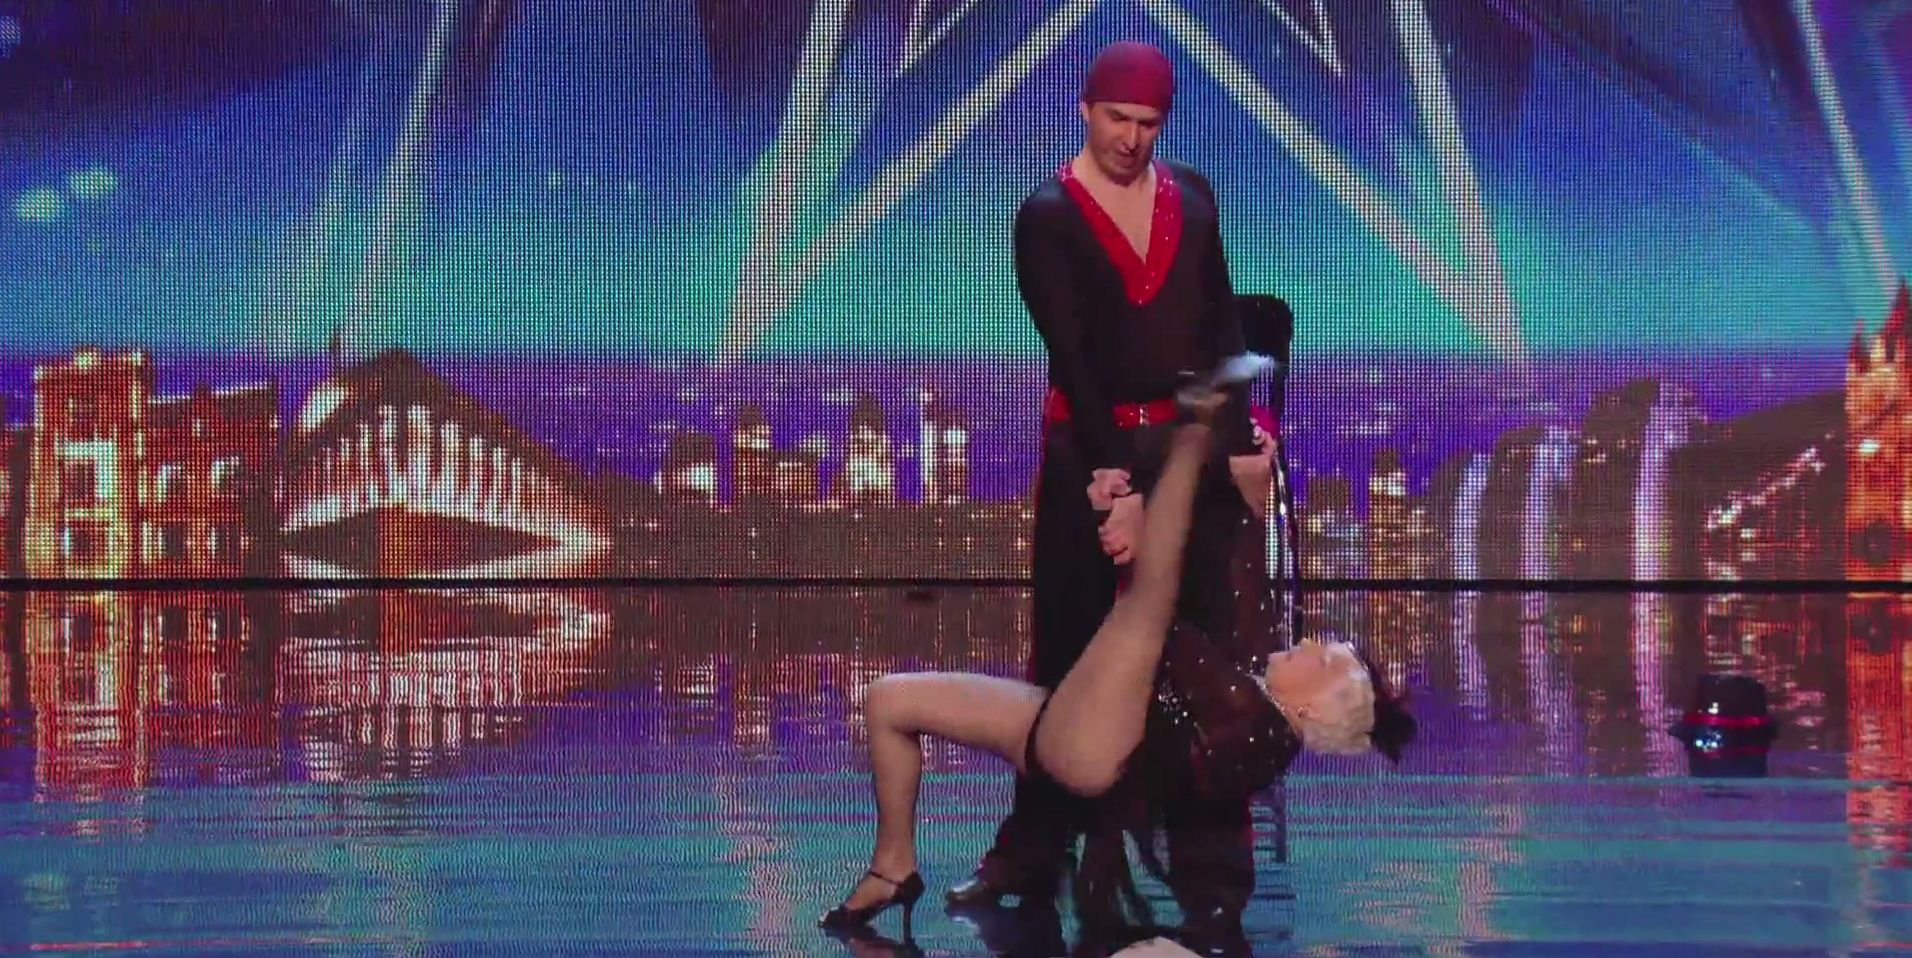 Britain's Got Talent: Should Paddy & Nico be disqualified after revelations they won another TV talent show?